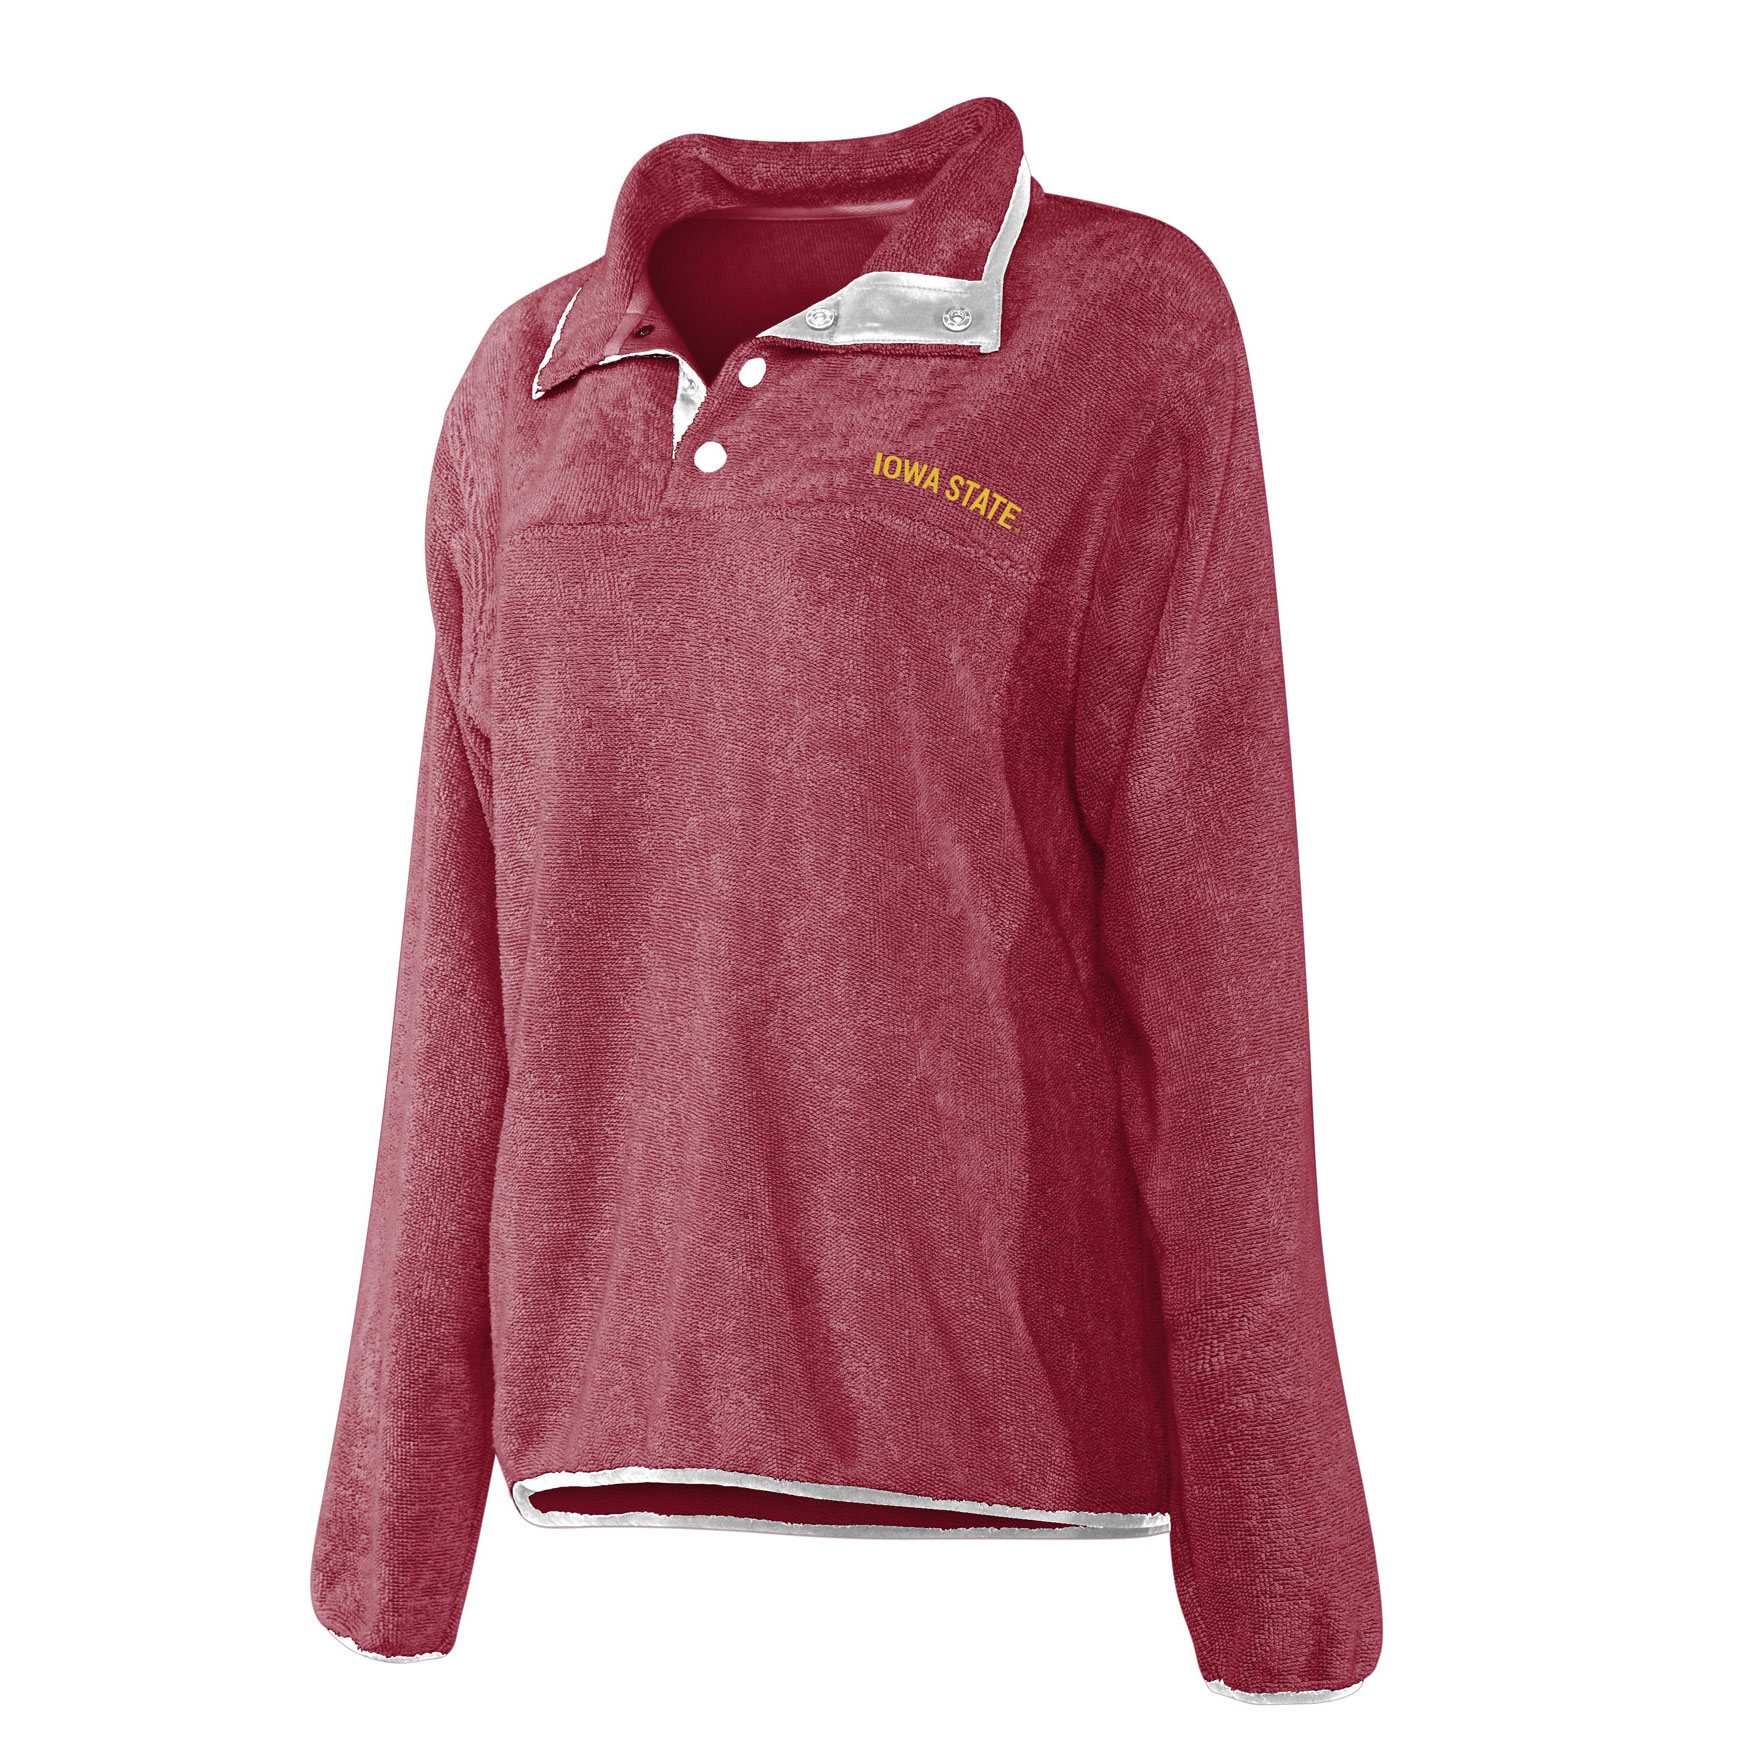 Image For Women's Iowa State Pullover